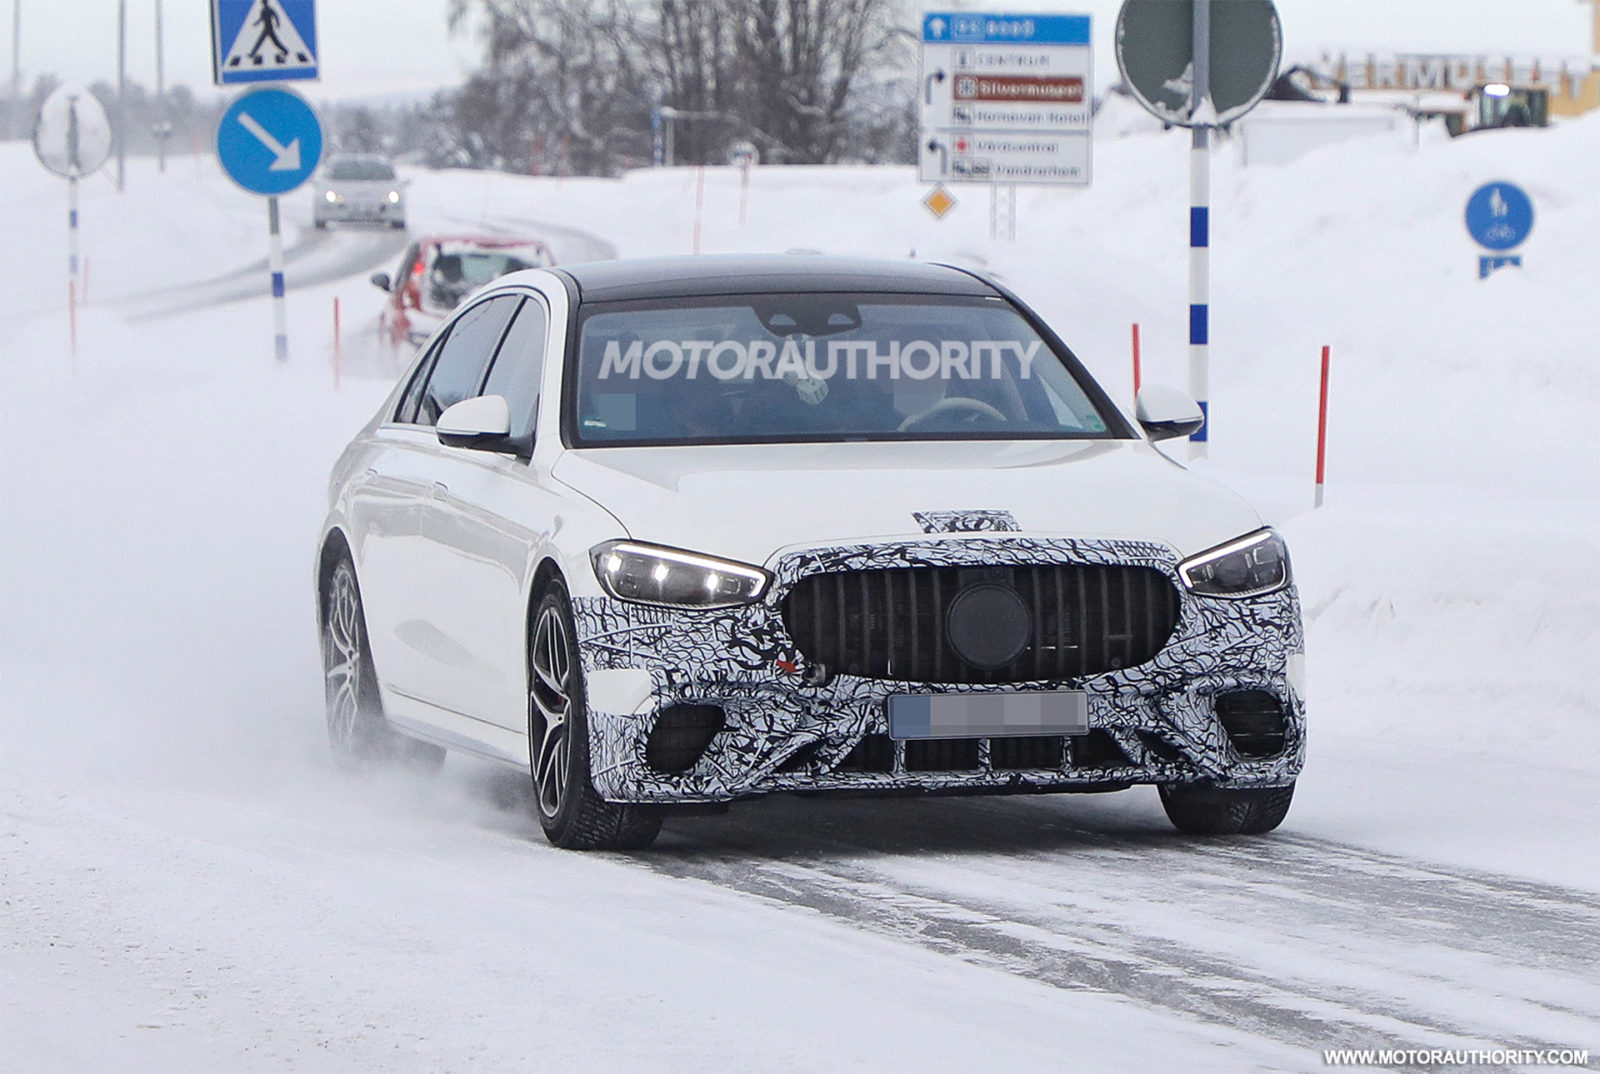 2022-mercedes-benz-amg-s63e-spy-shots-and-video:-plug-in-hybrid-super-sedan-on-the-way